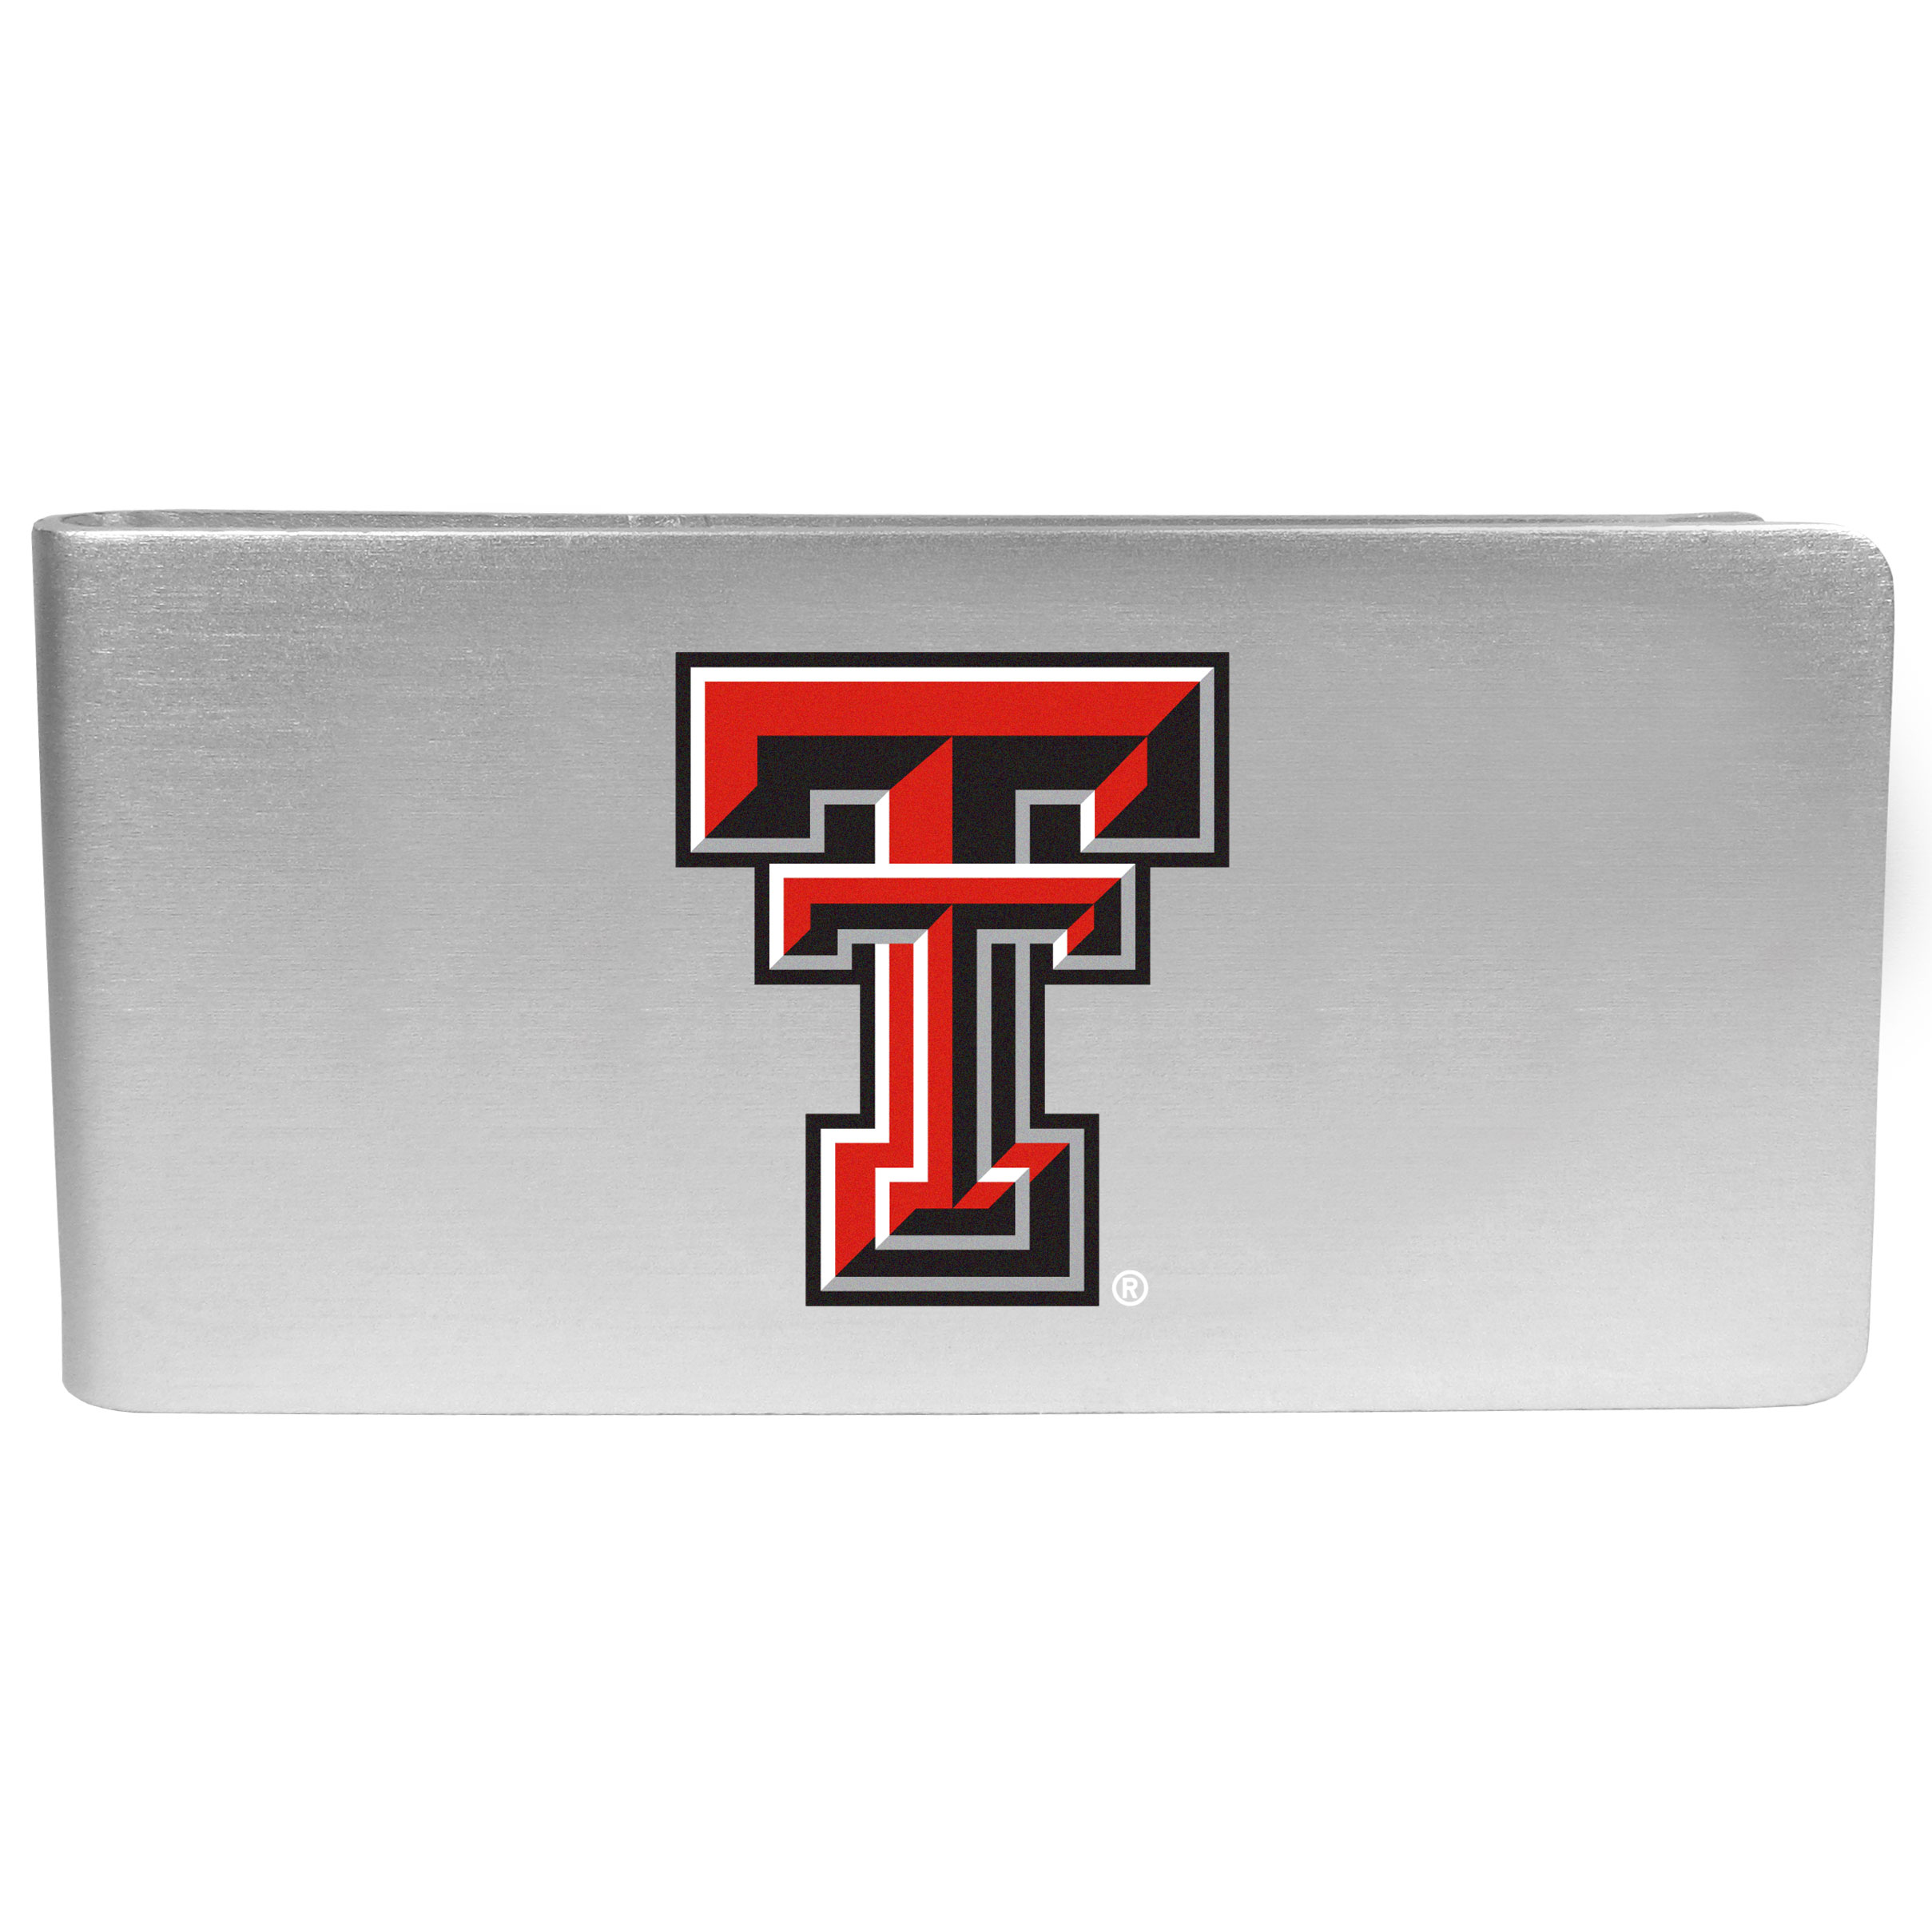 Texas Tech Raiders Logo Money Clip - Our brushed metal money clip has classic style and functionality. The attractive clip features the Texas Tech Raiders logo expertly printed on front.